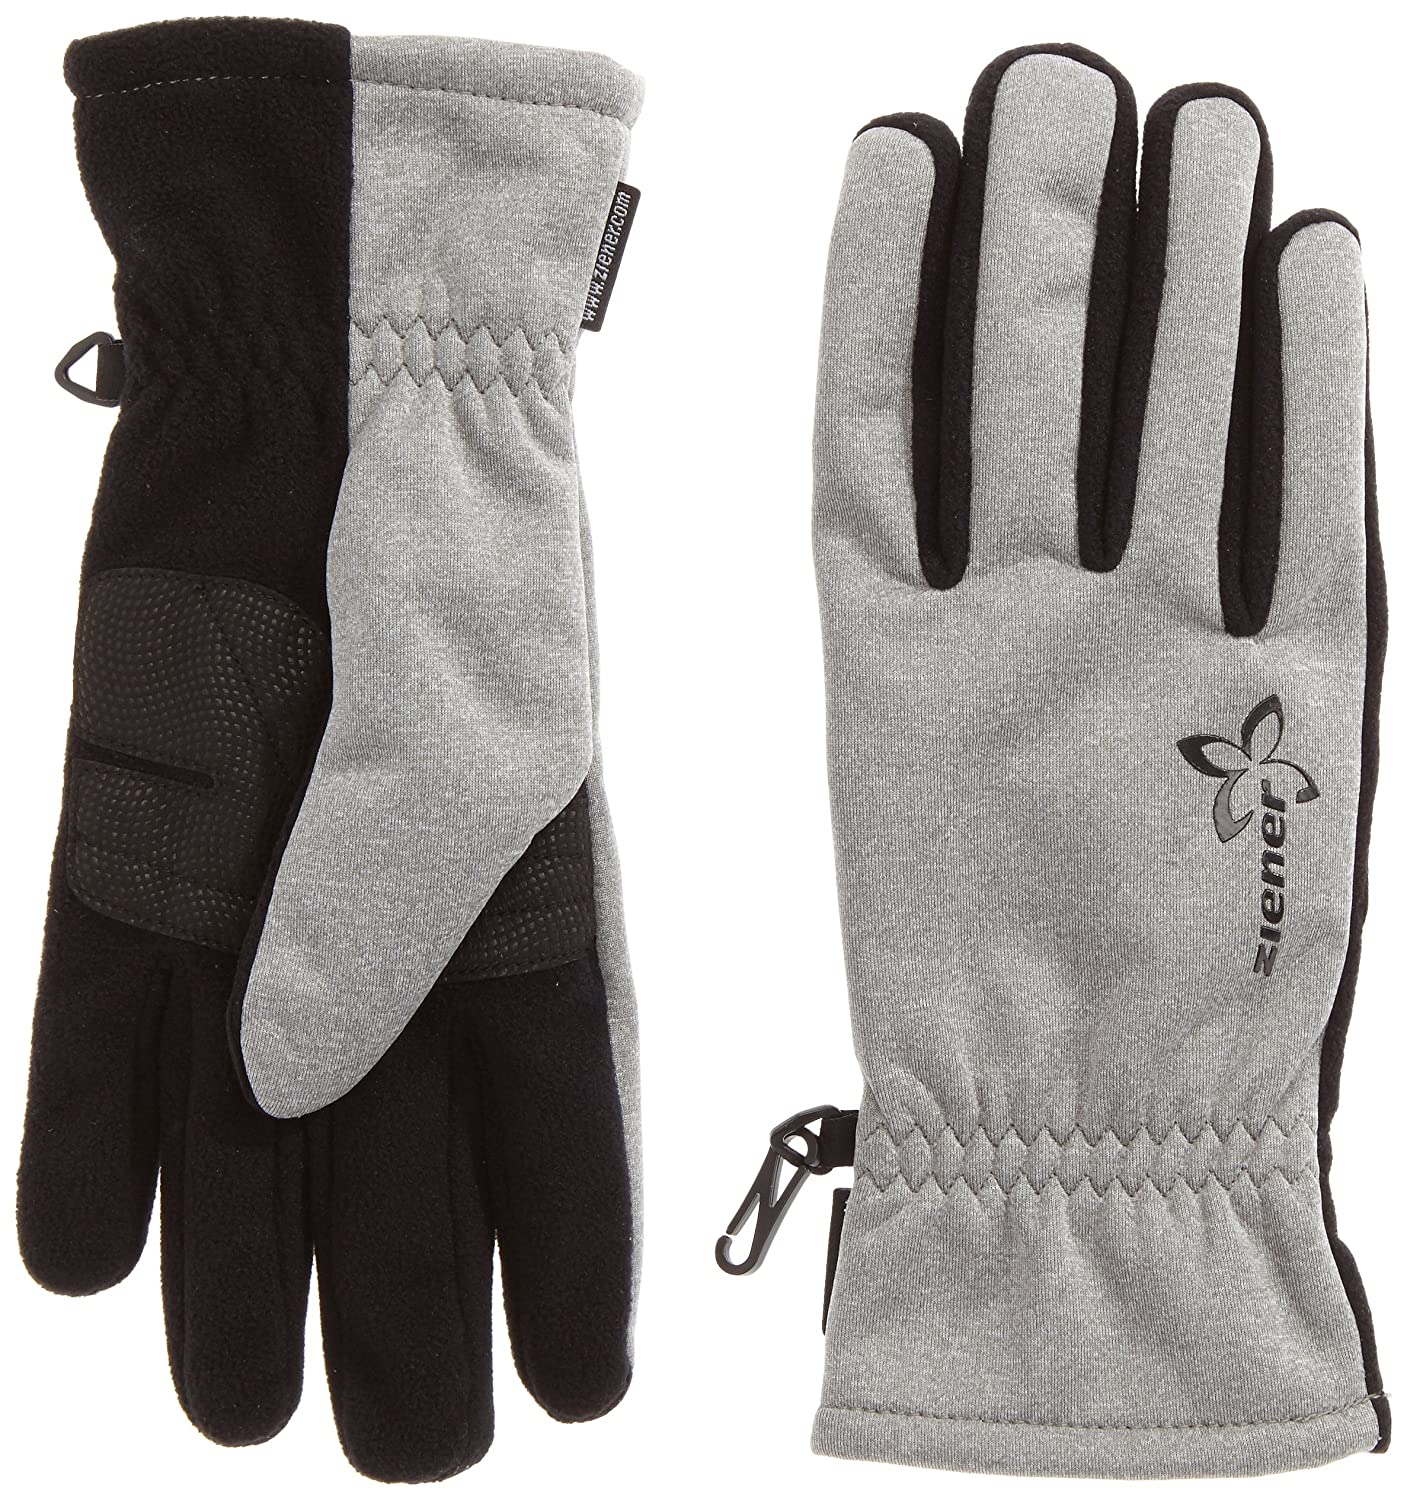 Importa Lady Gloves Multisport Gloves Handschuhe Importa Lady Gloves Multisport Grey Melange